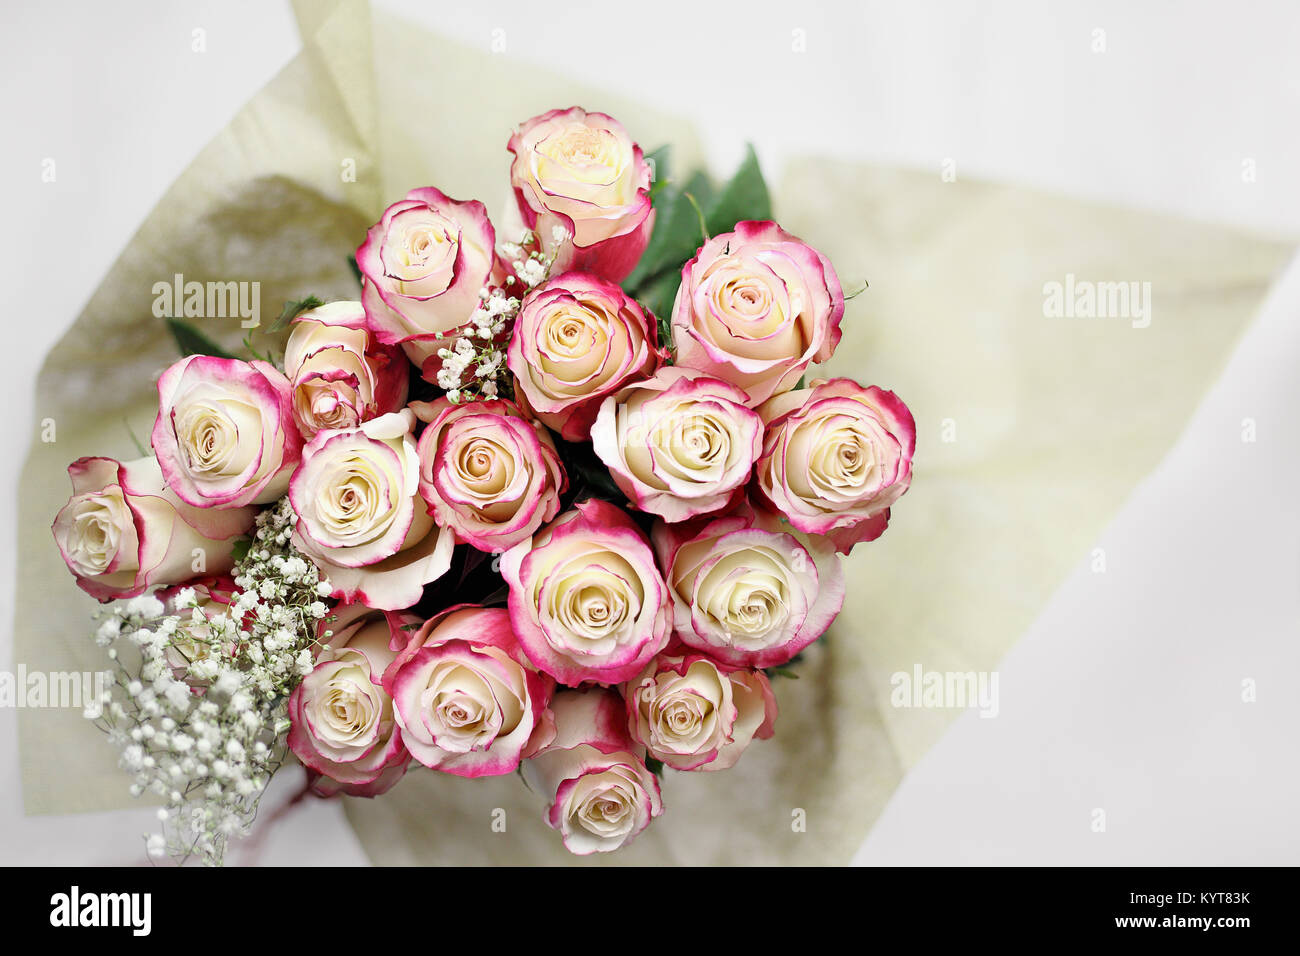 Rose flowers valentines red marriage anniversary birthday stock beautiful bouquet of red and white roses with babys breath shot from above selective focus izmirmasajfo